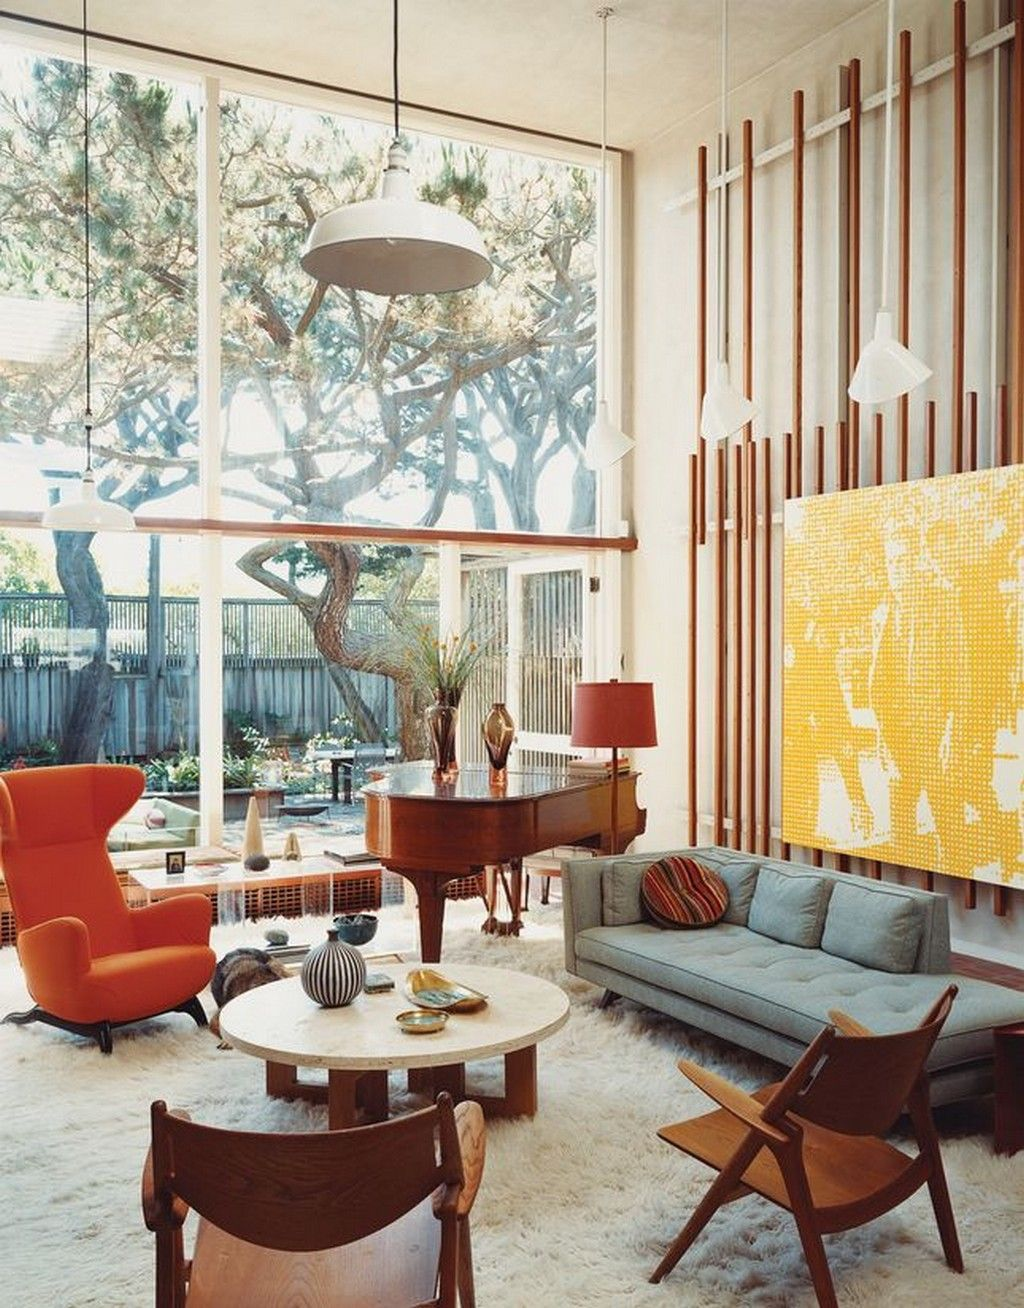 60s living room design